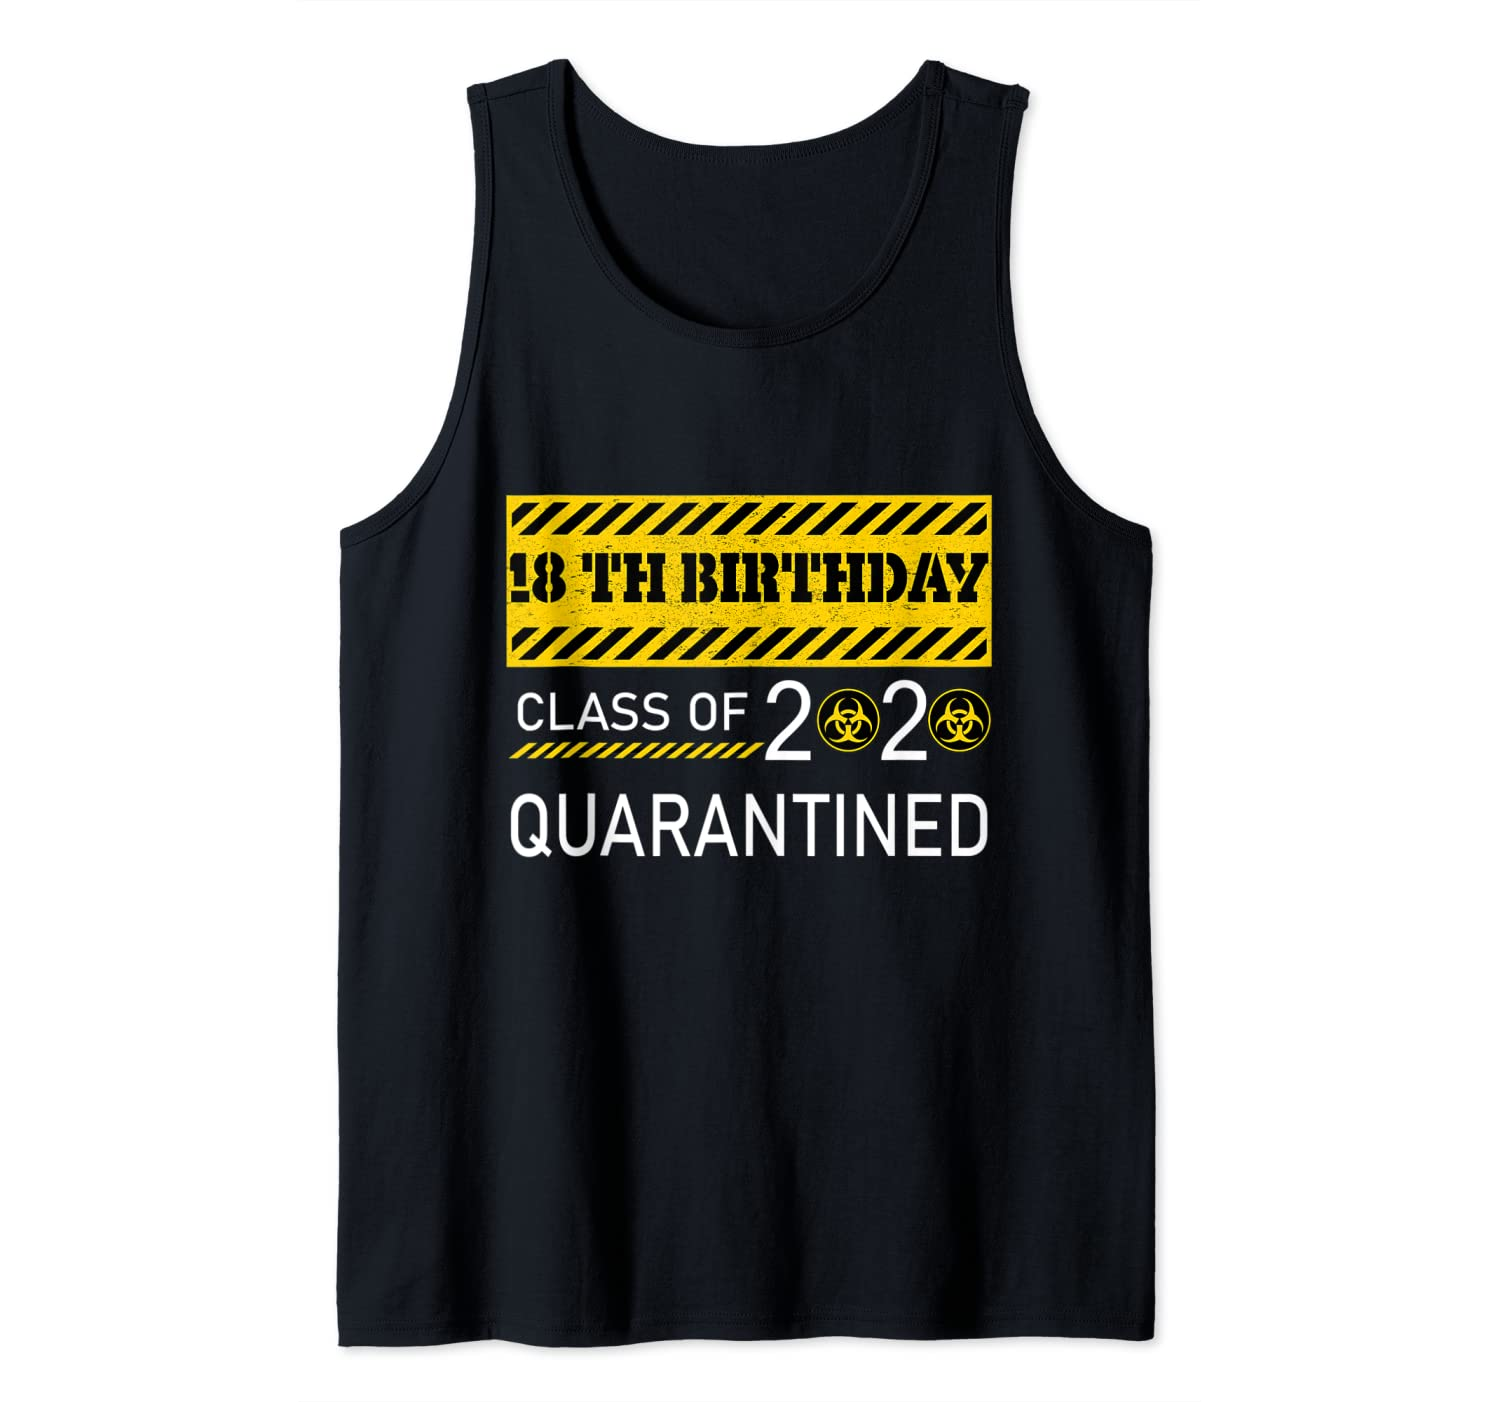 Perfect for A Gift Tank Top